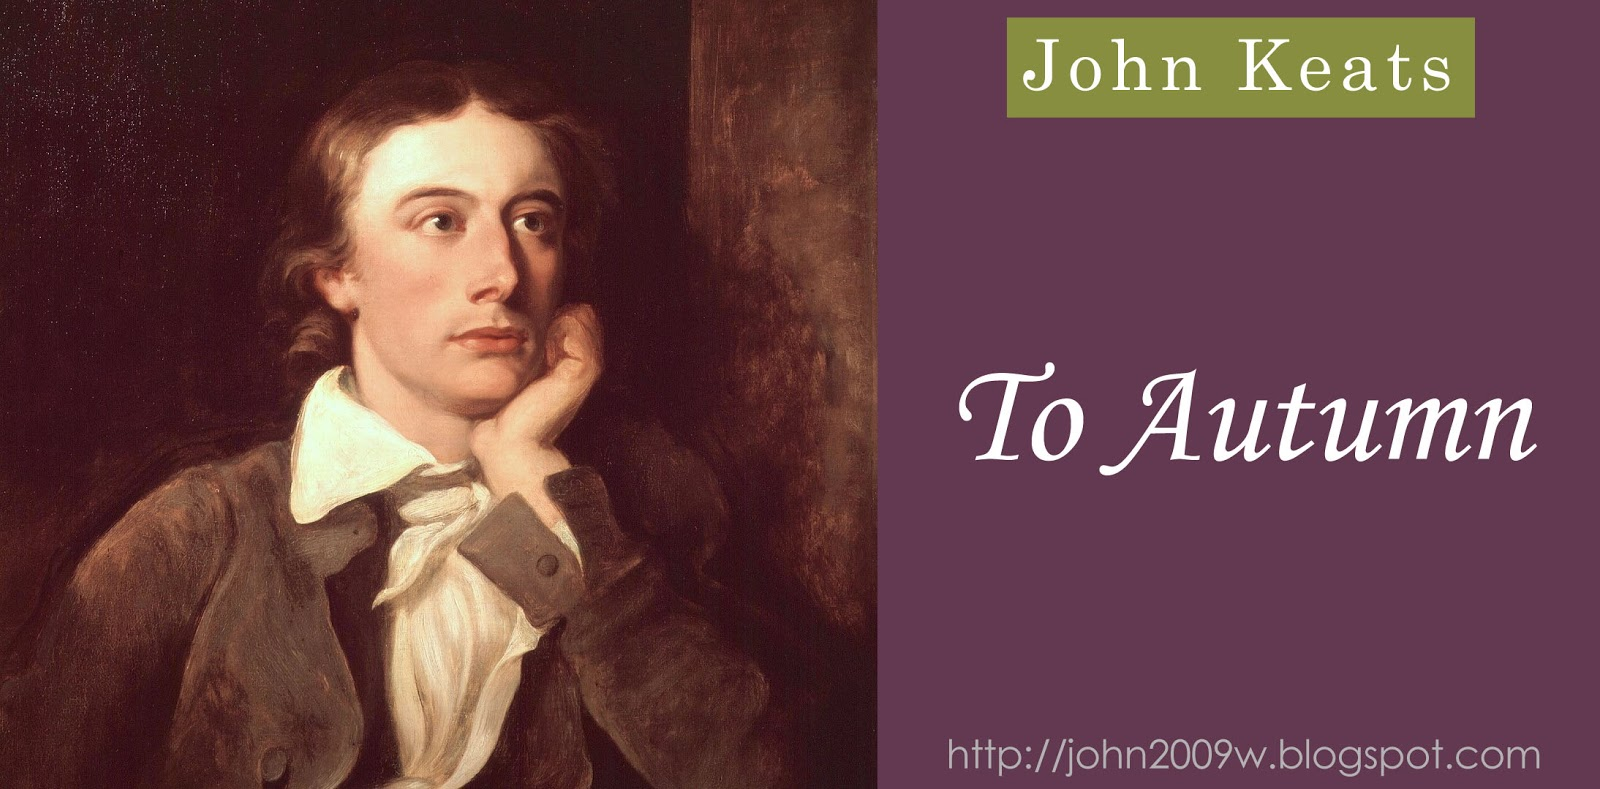 to autumn john keats essay John keats, an british romantic poet has generally been considered as an escapist poet due to his love of characteristics and his fascination with the senses, eschewing any mention of the politics of his time.